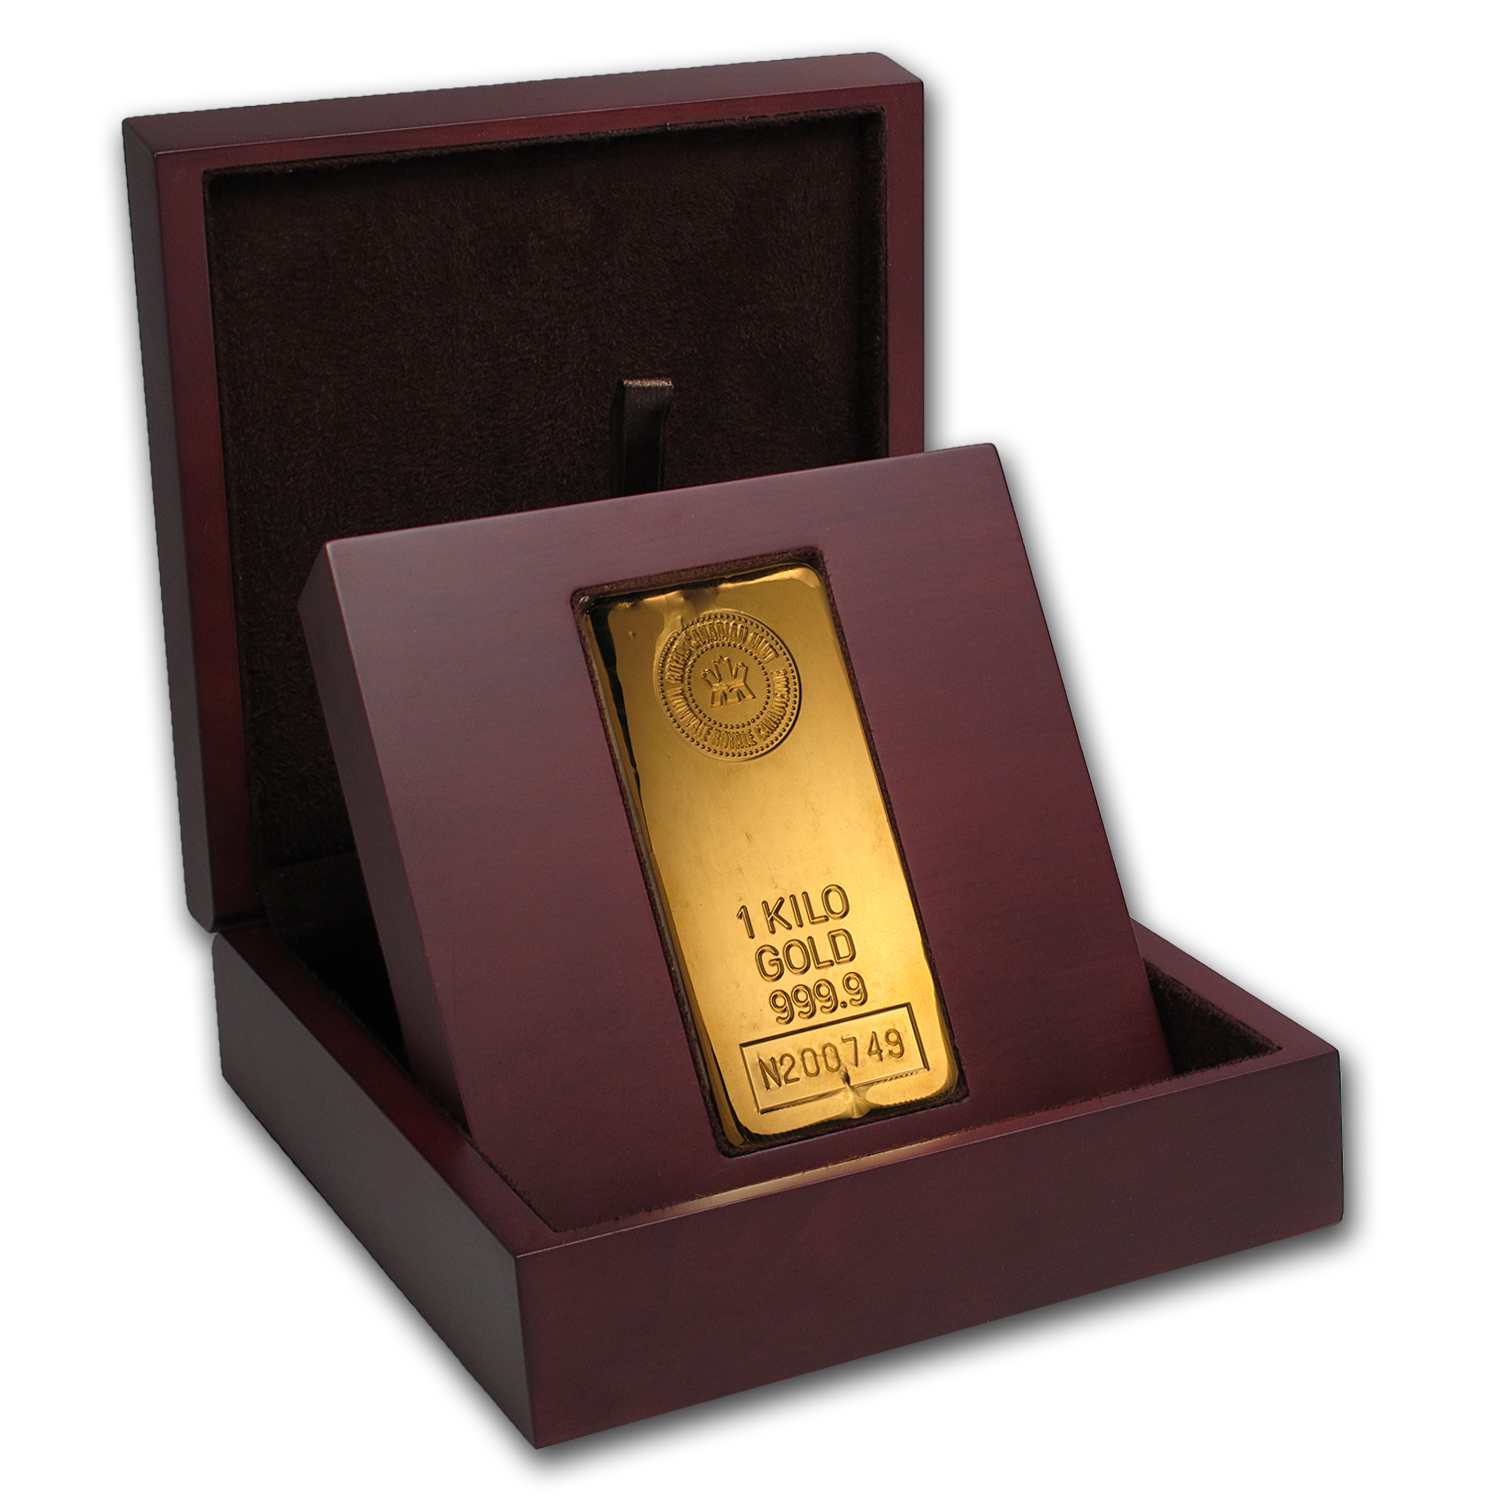 APMEX Wood Gift Box - 1 kilo RCM Gold Bar (Cast)